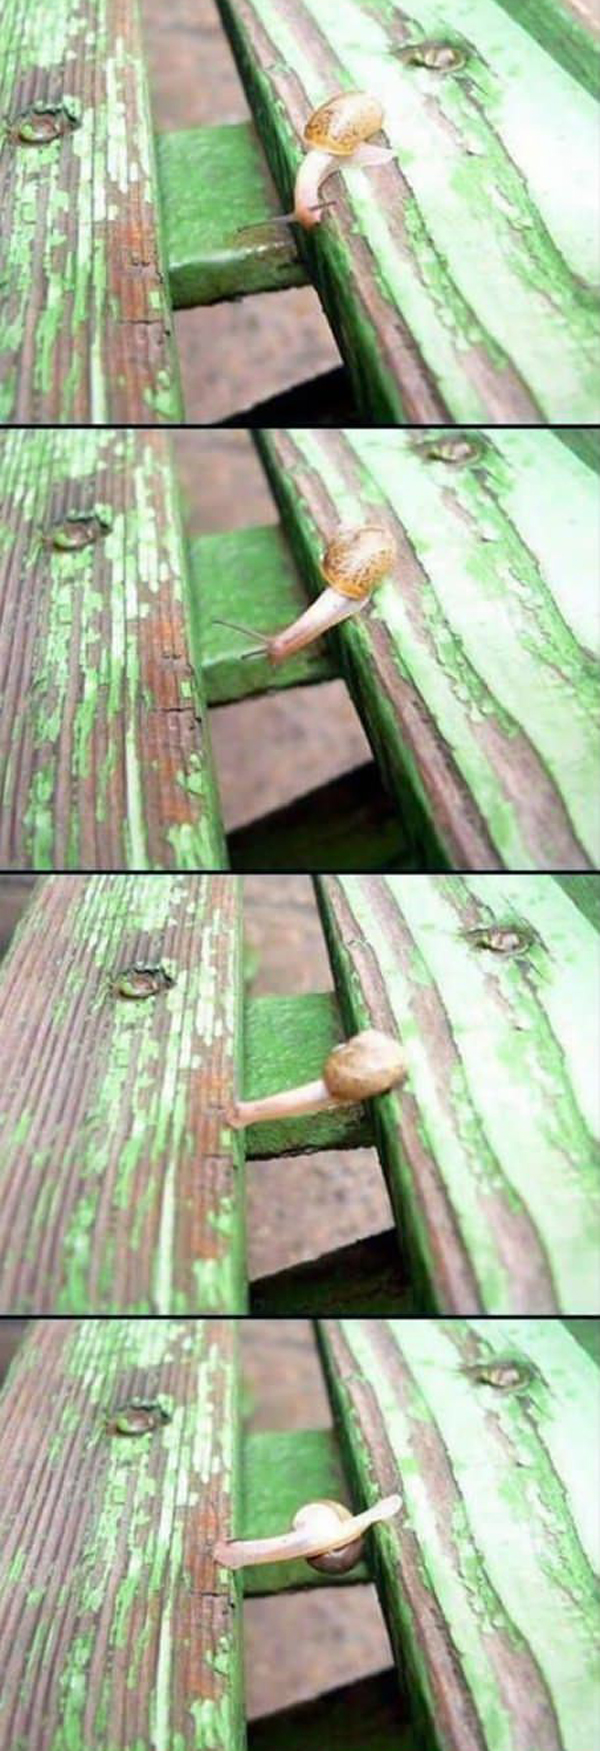 funny snail pictures